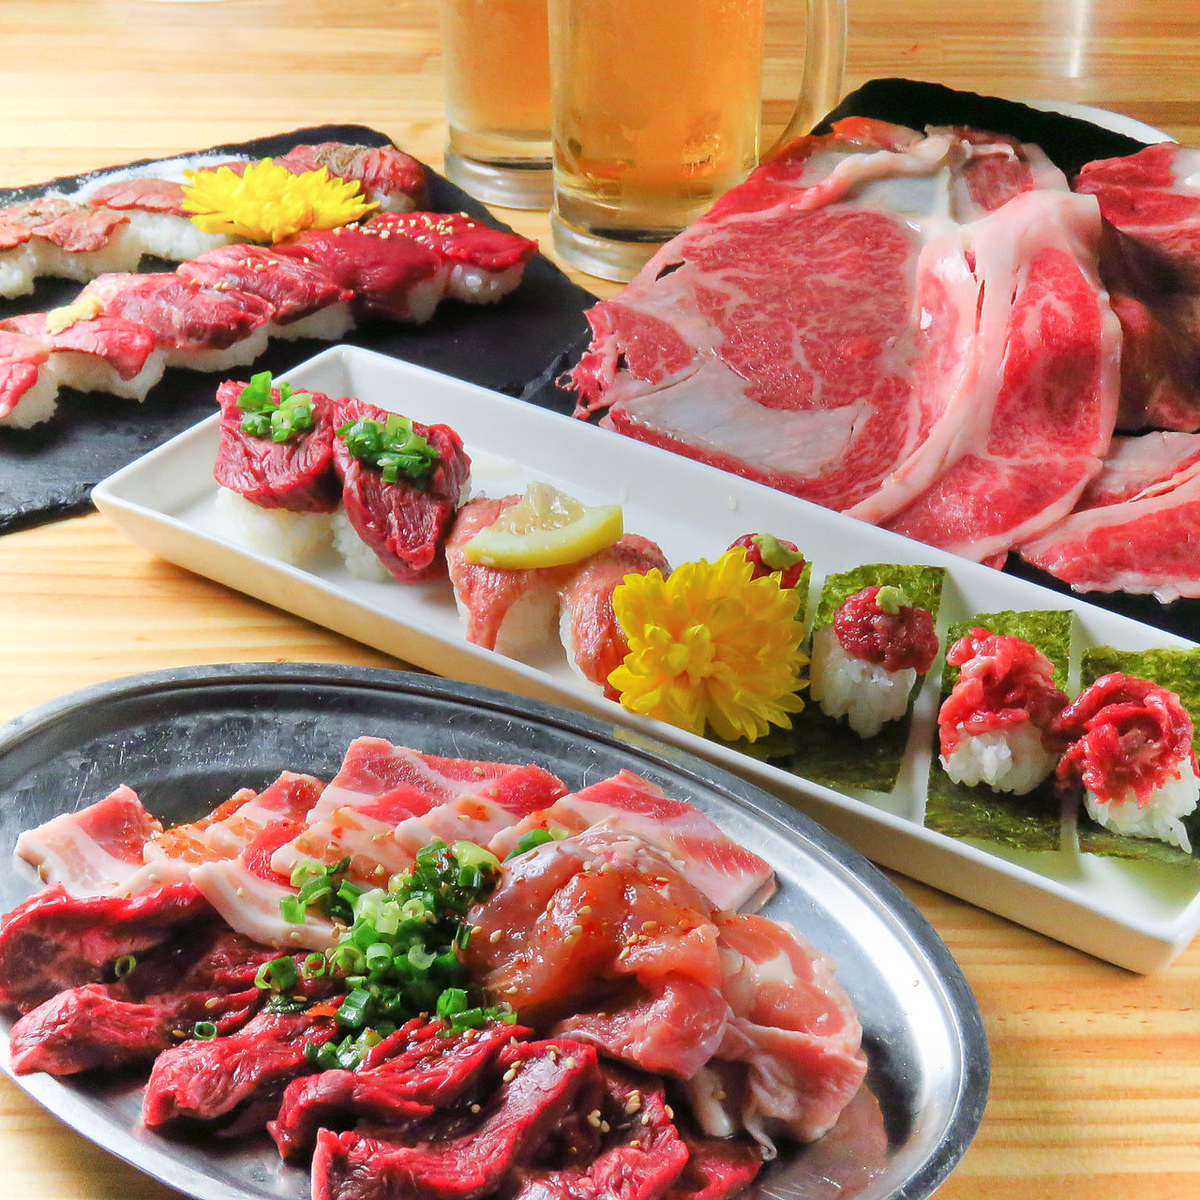 All you can eat meat sushi and yakiniku!